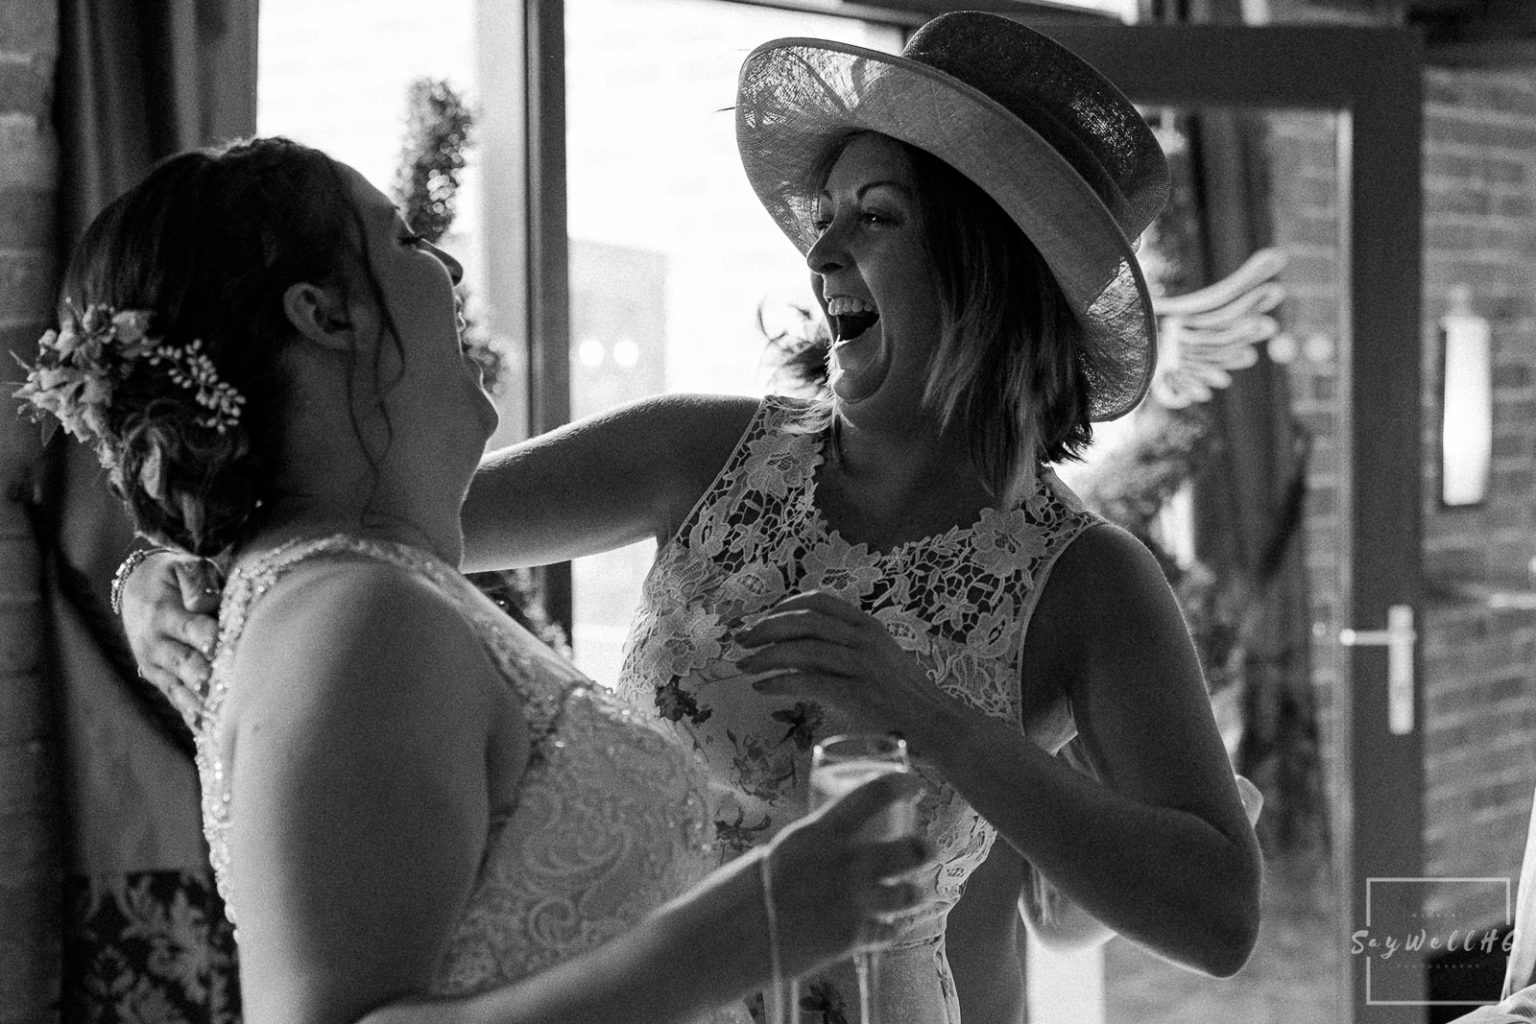 Swancar Farm Wedding Photography - wedding guests enjoy the post wedding ceremony drinks and sunshine